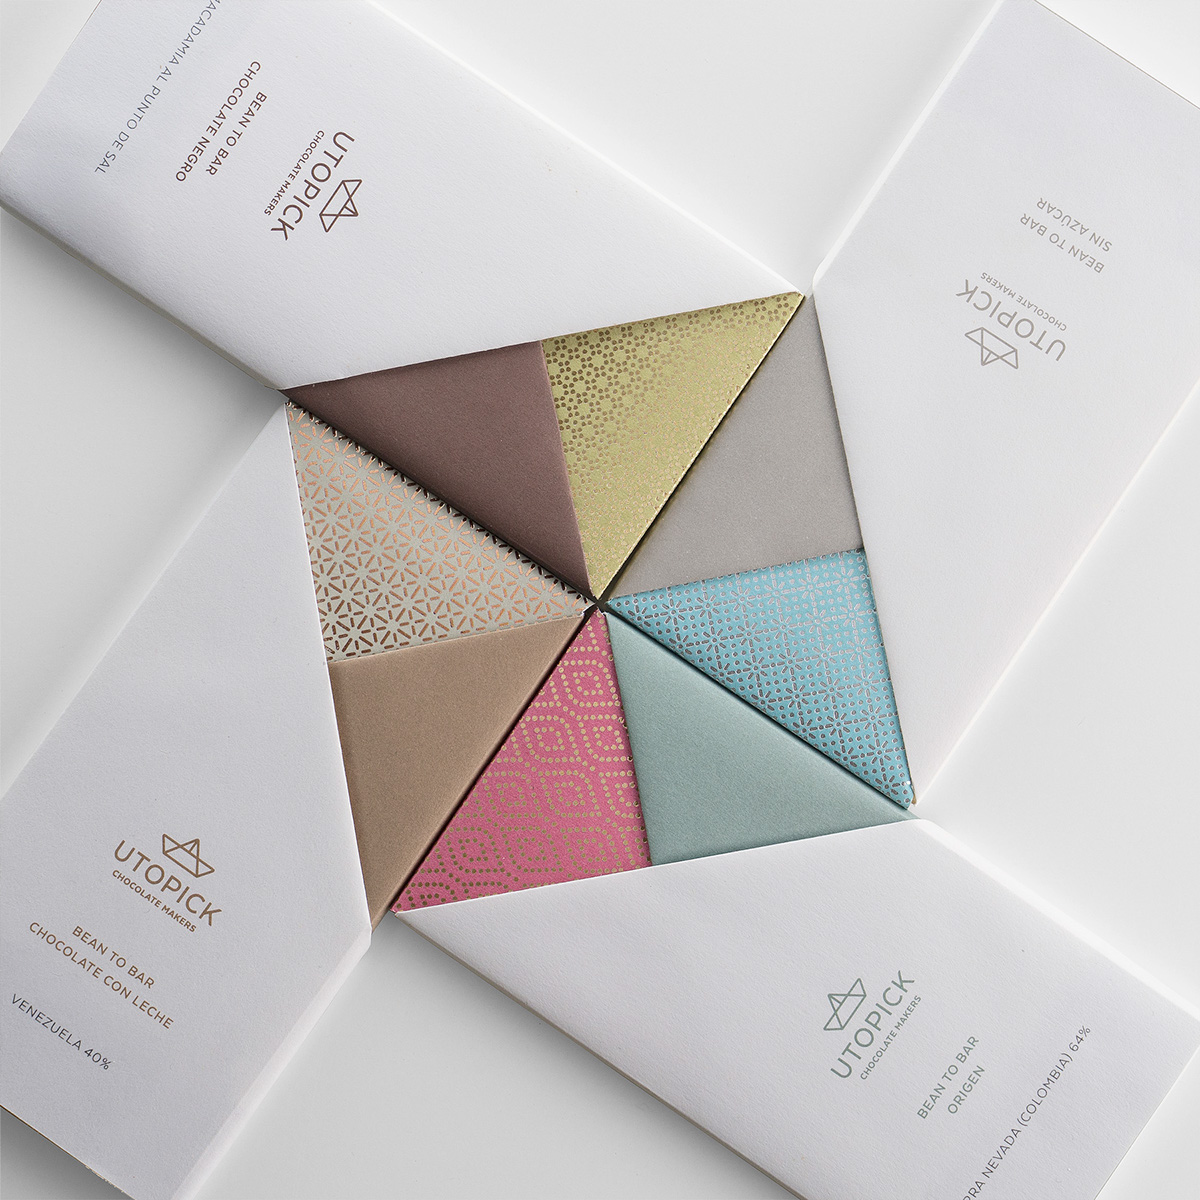 Delicious Brand Identity and Packaging: Utopick Chocolate Bars